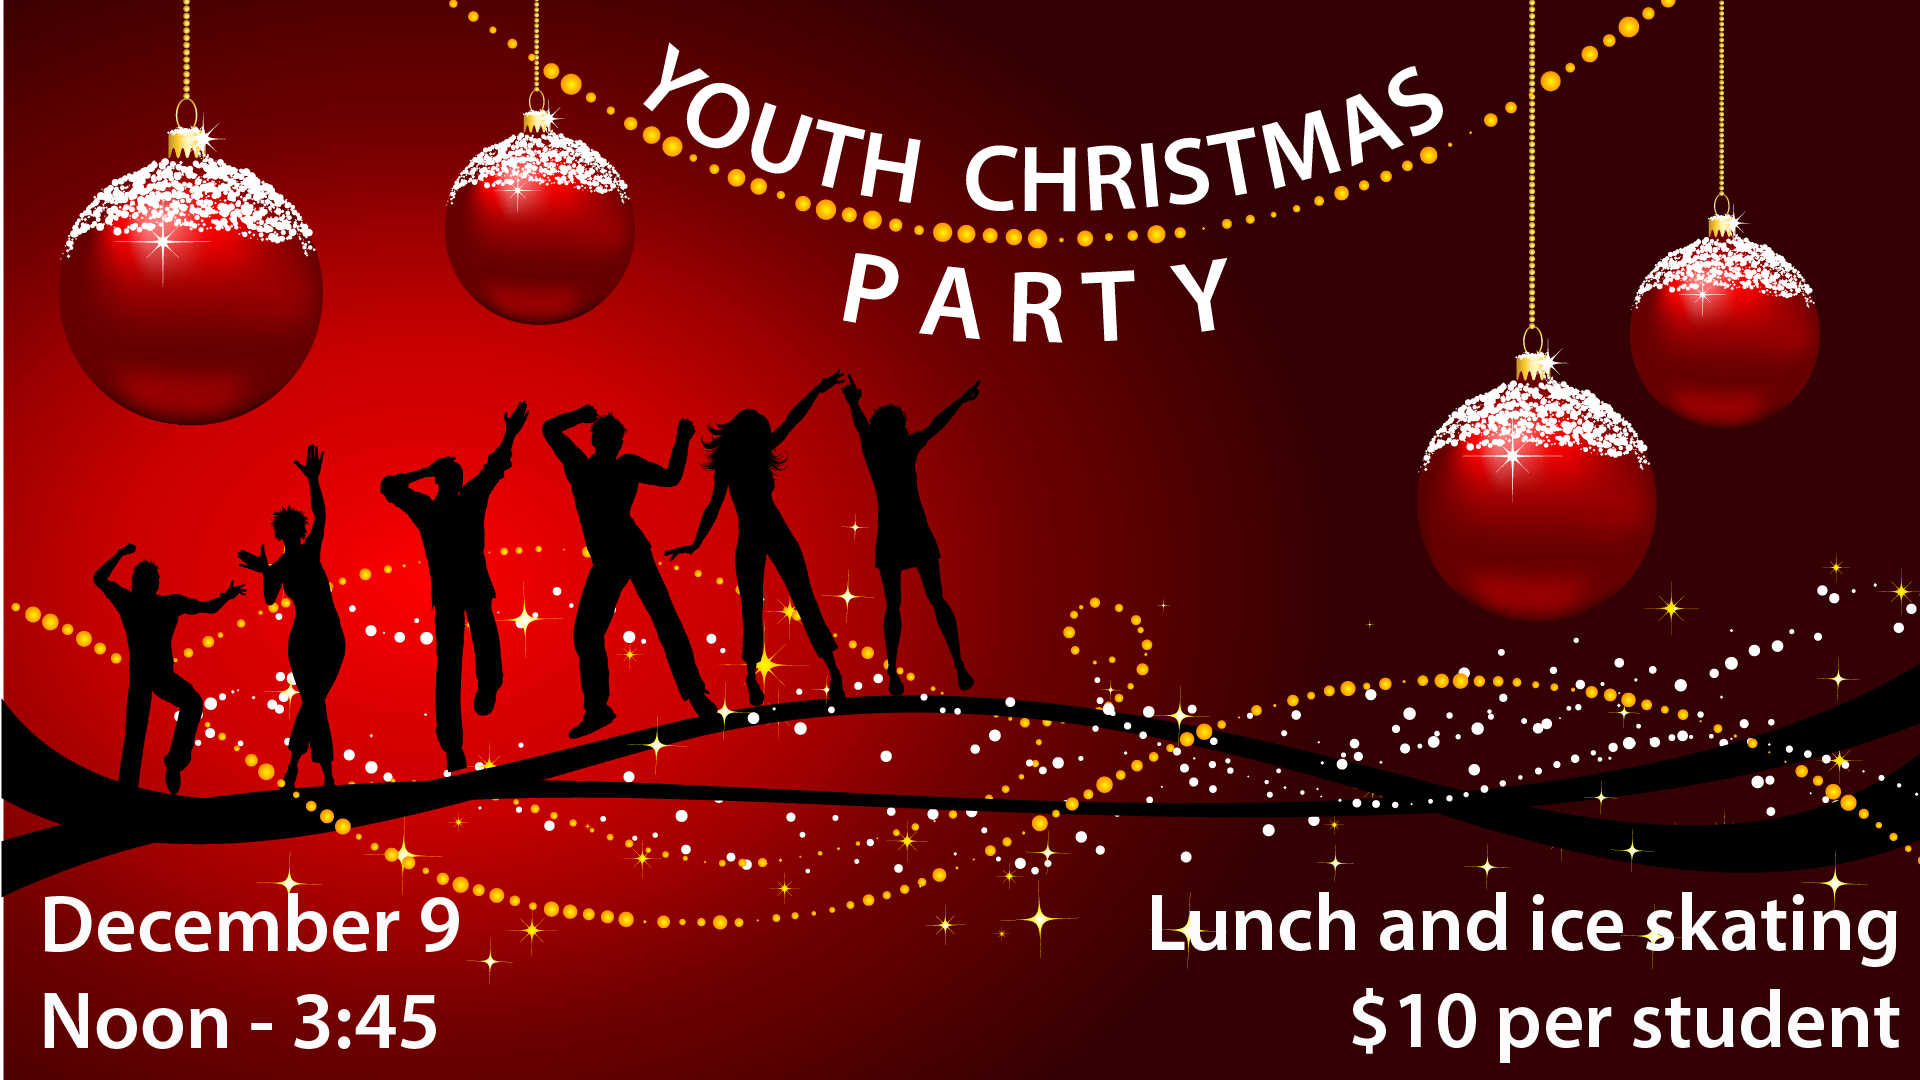 http://www.wieuca.org/uploads/YouthChristmas.png